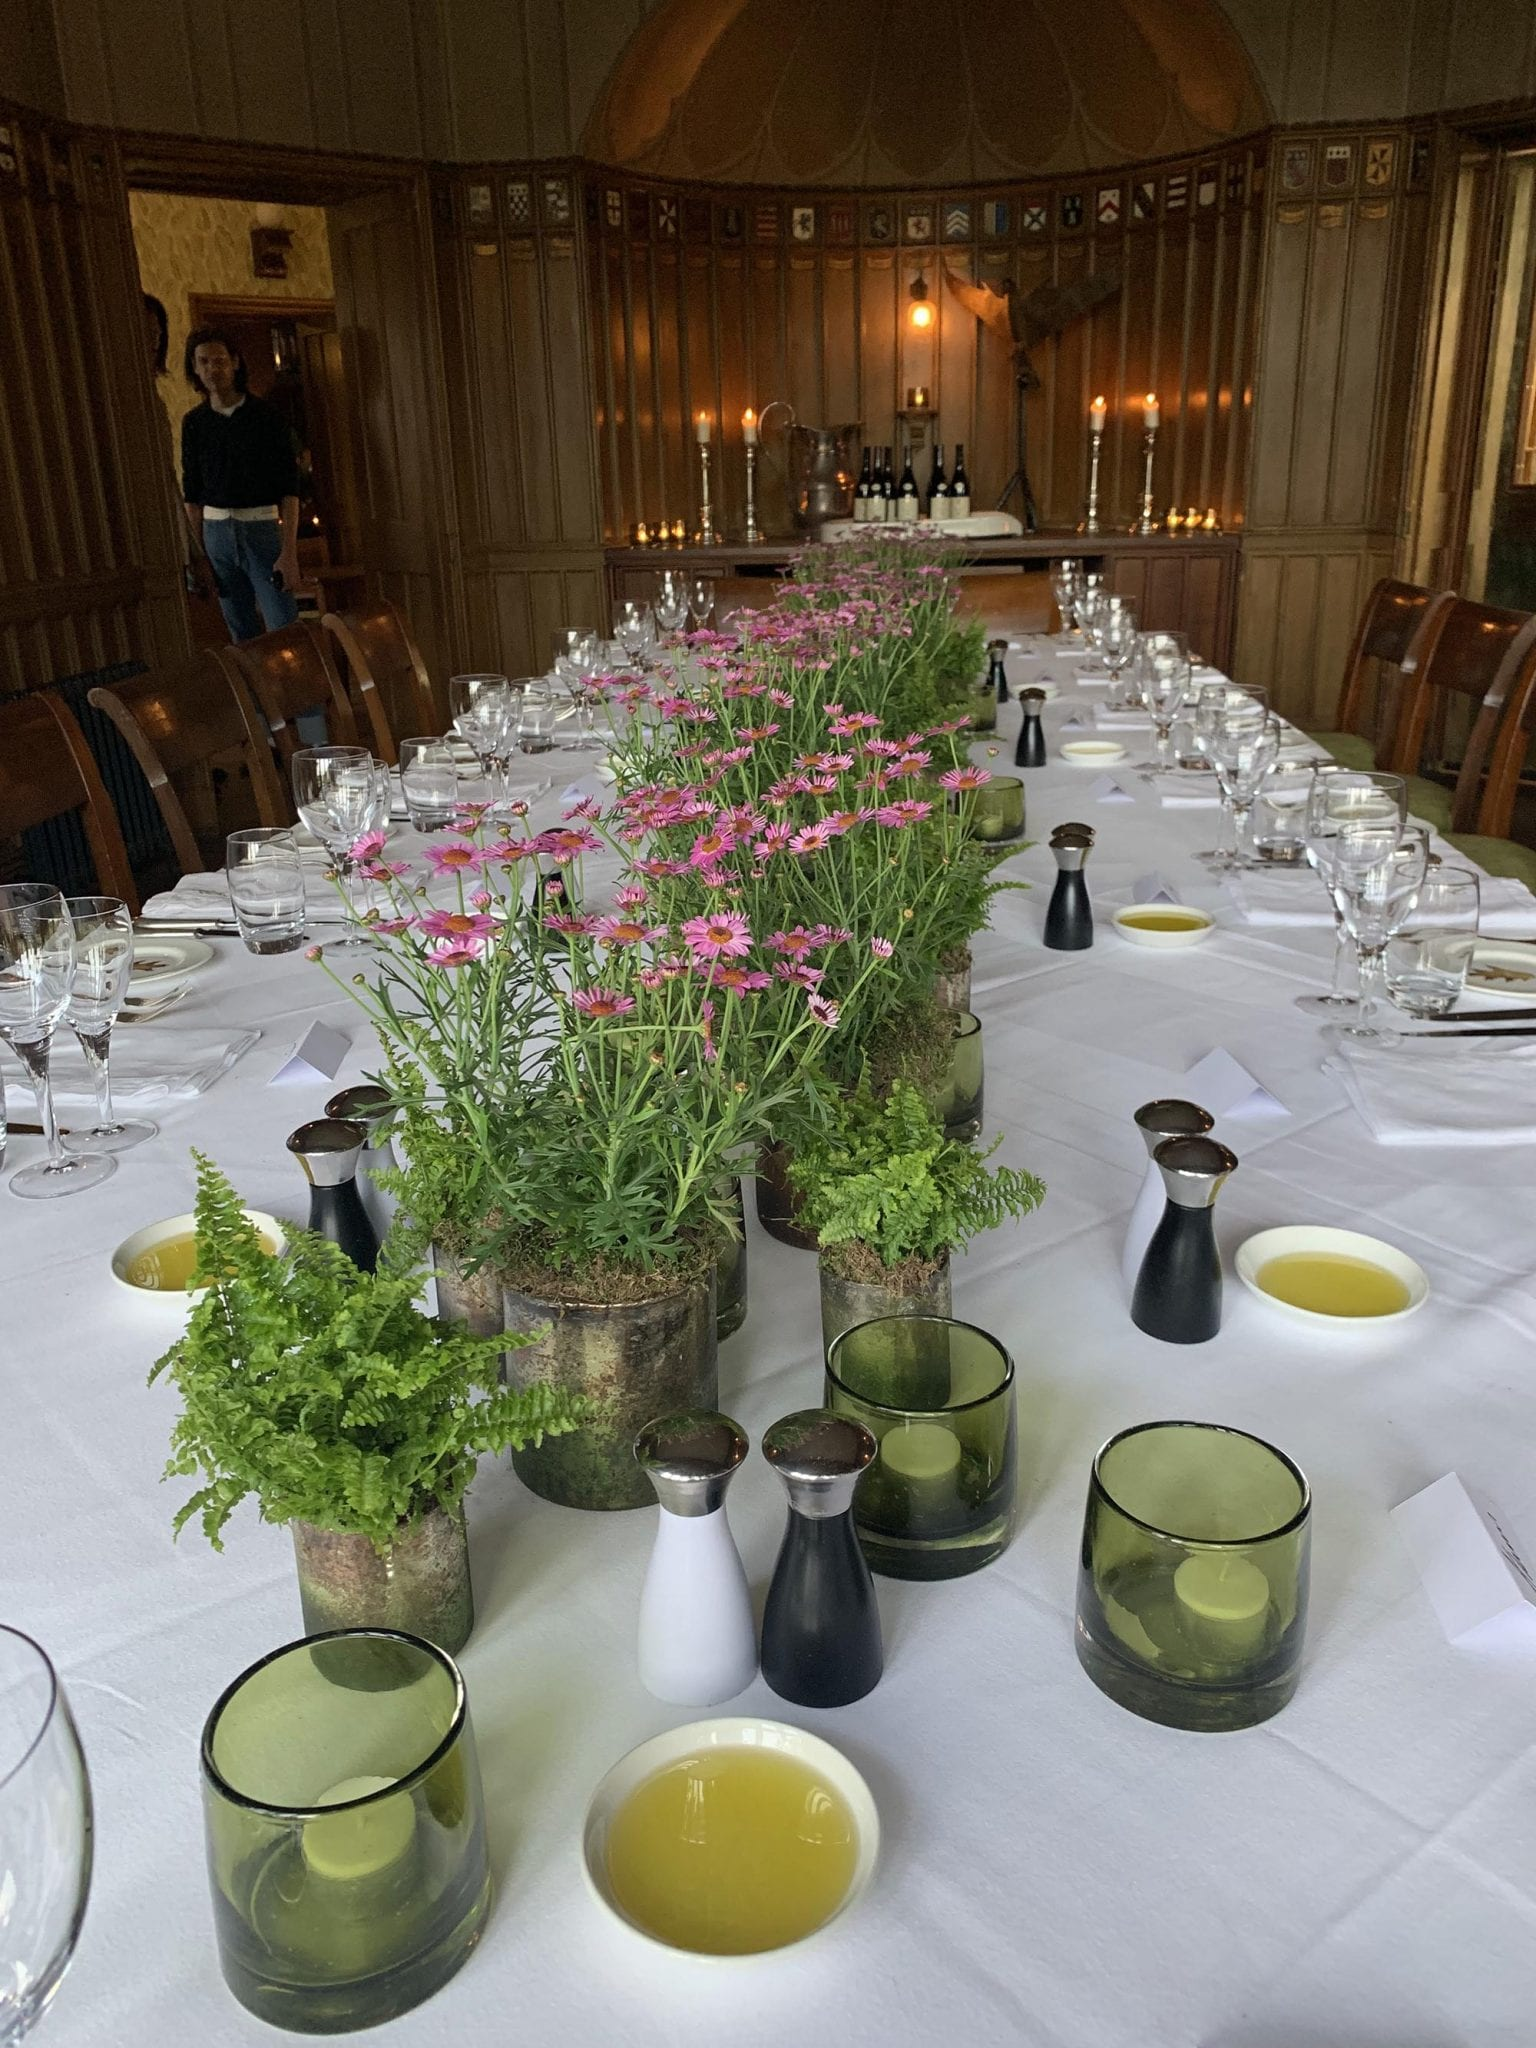 Table scape dinner party Hotel Endsleigh